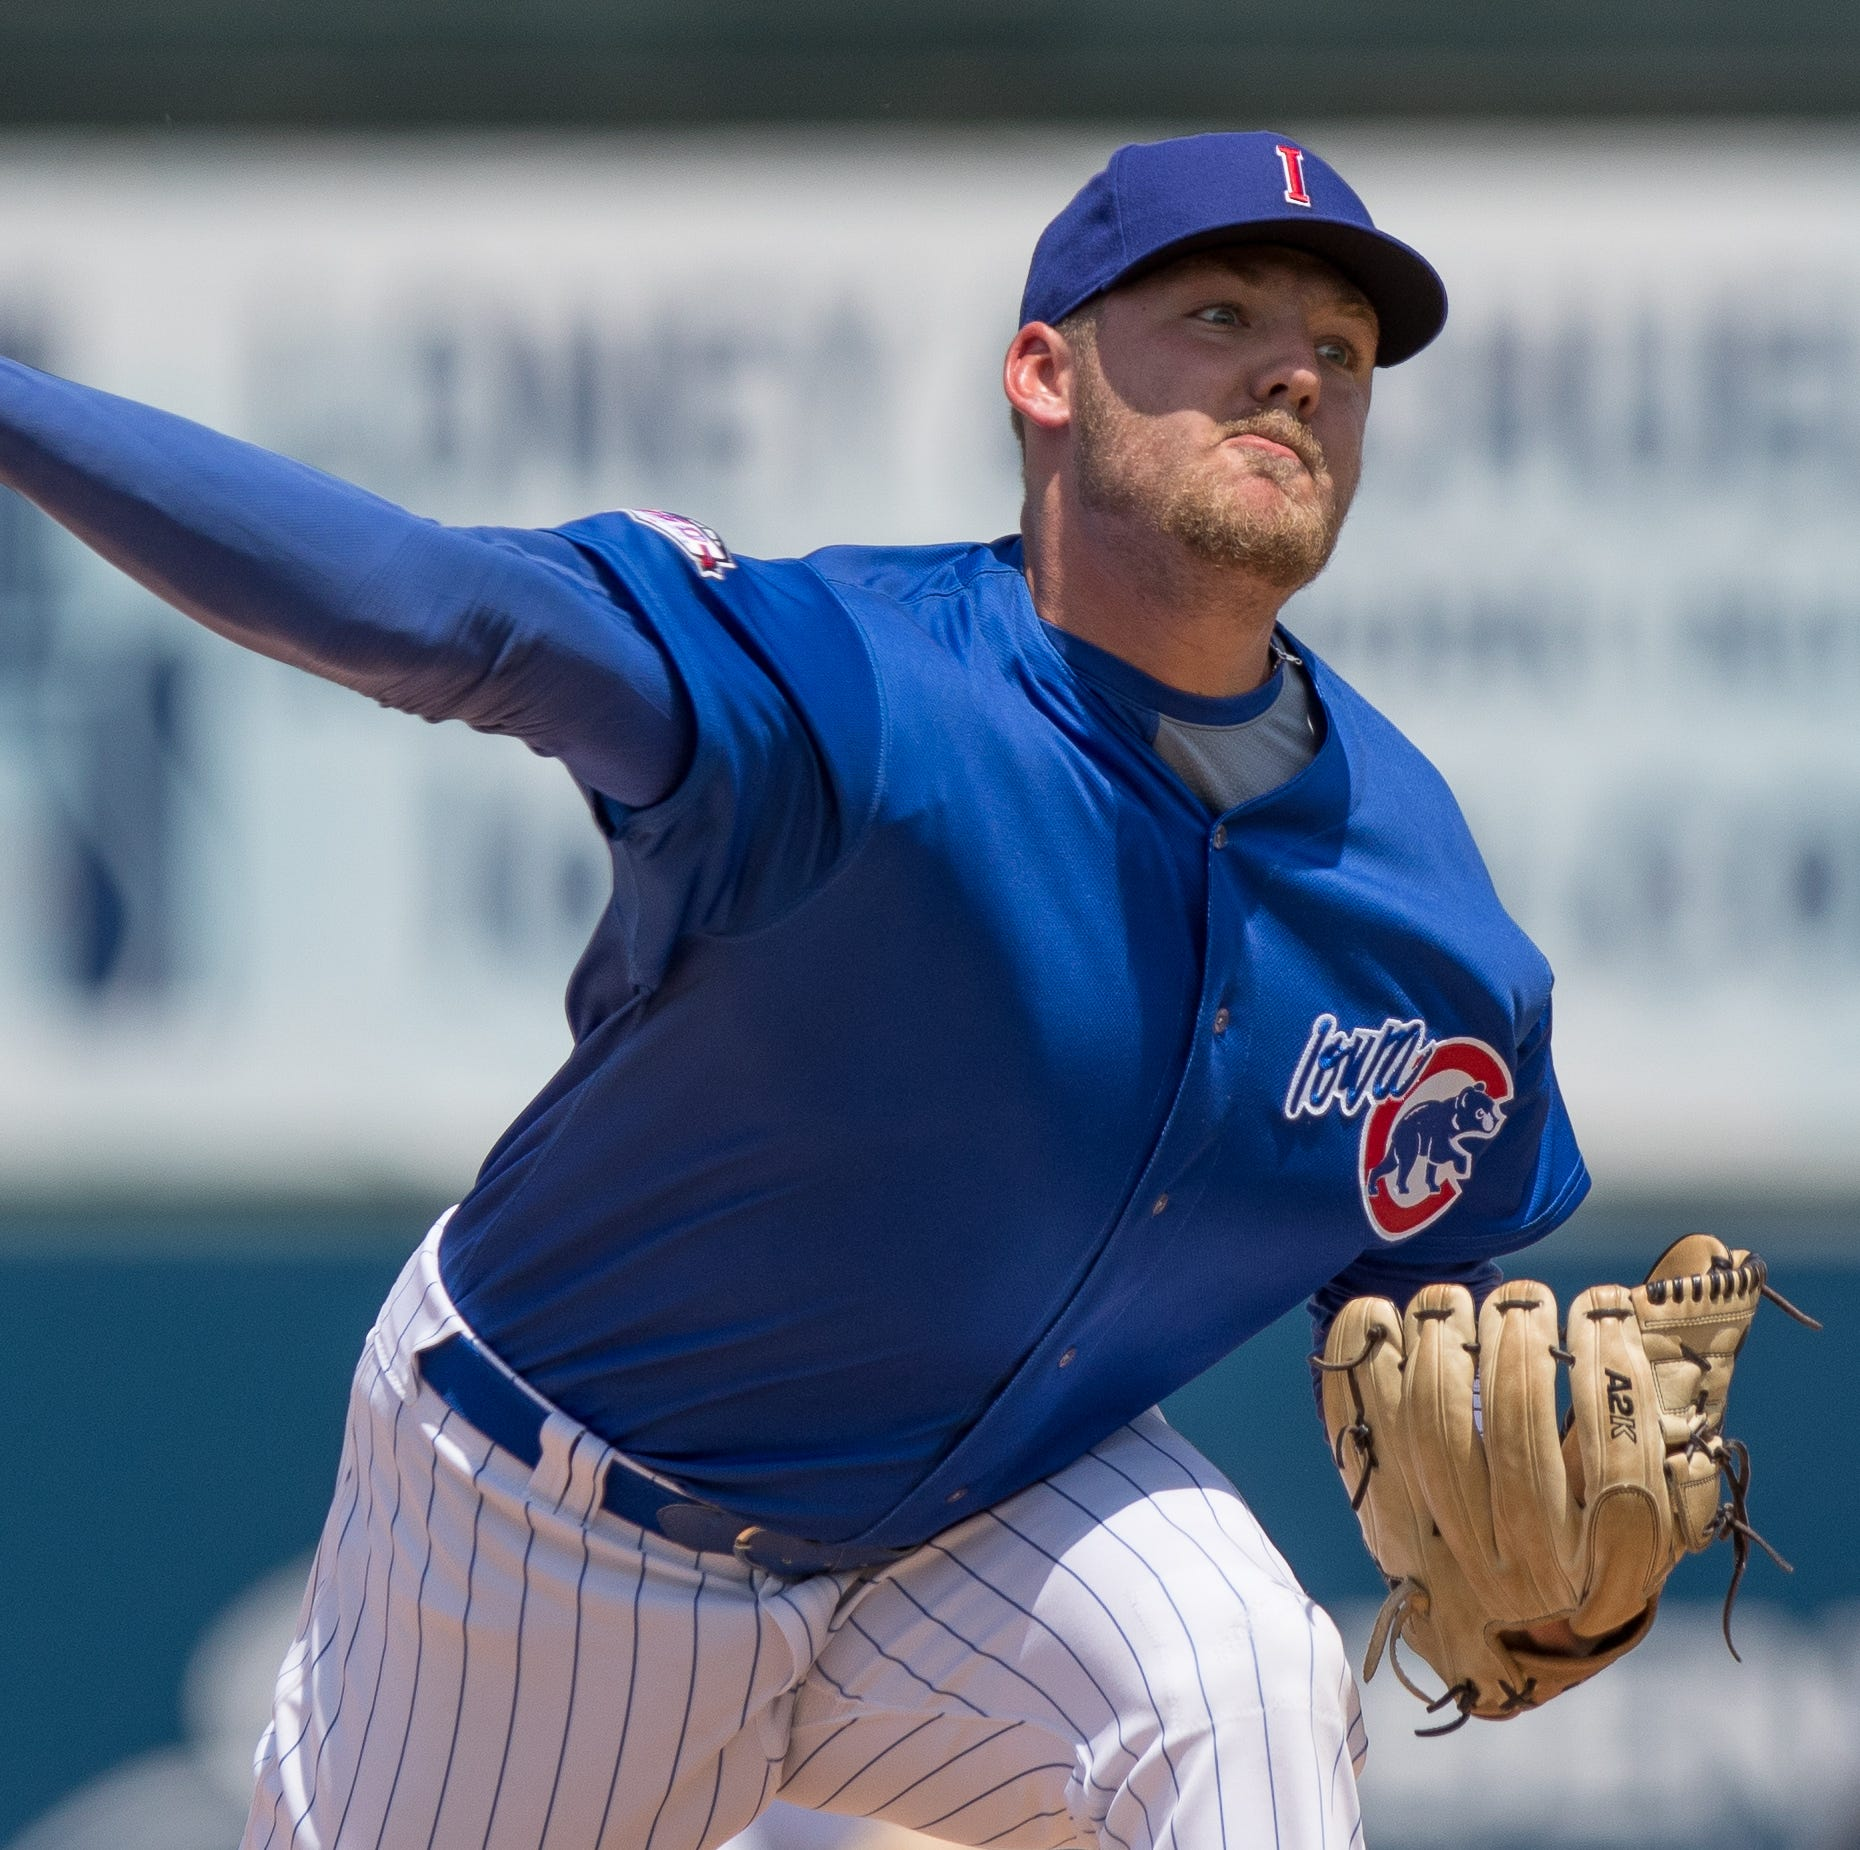 Iowa Cubs reliever Dakota Mekkes either headed back to school or to the big leagues in September